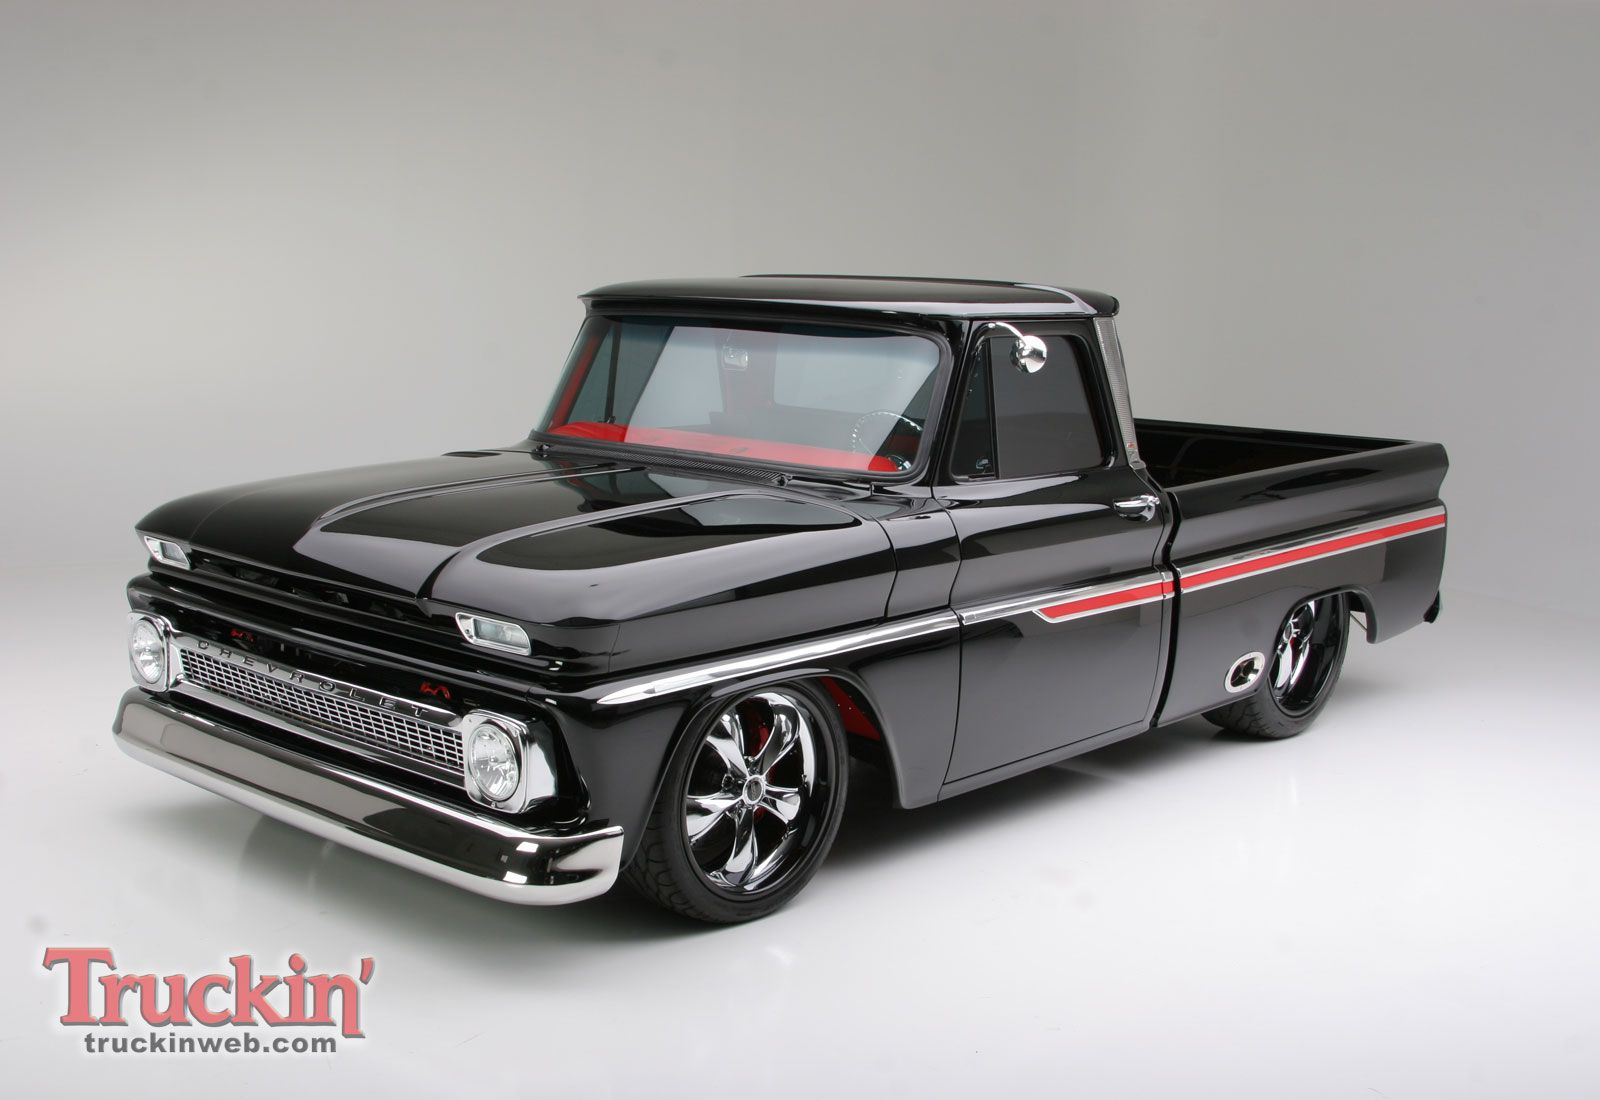 1965 Chevy Truck | Top 10 Trucks Of 2010 1965 Chevy C10 | Cars I ...